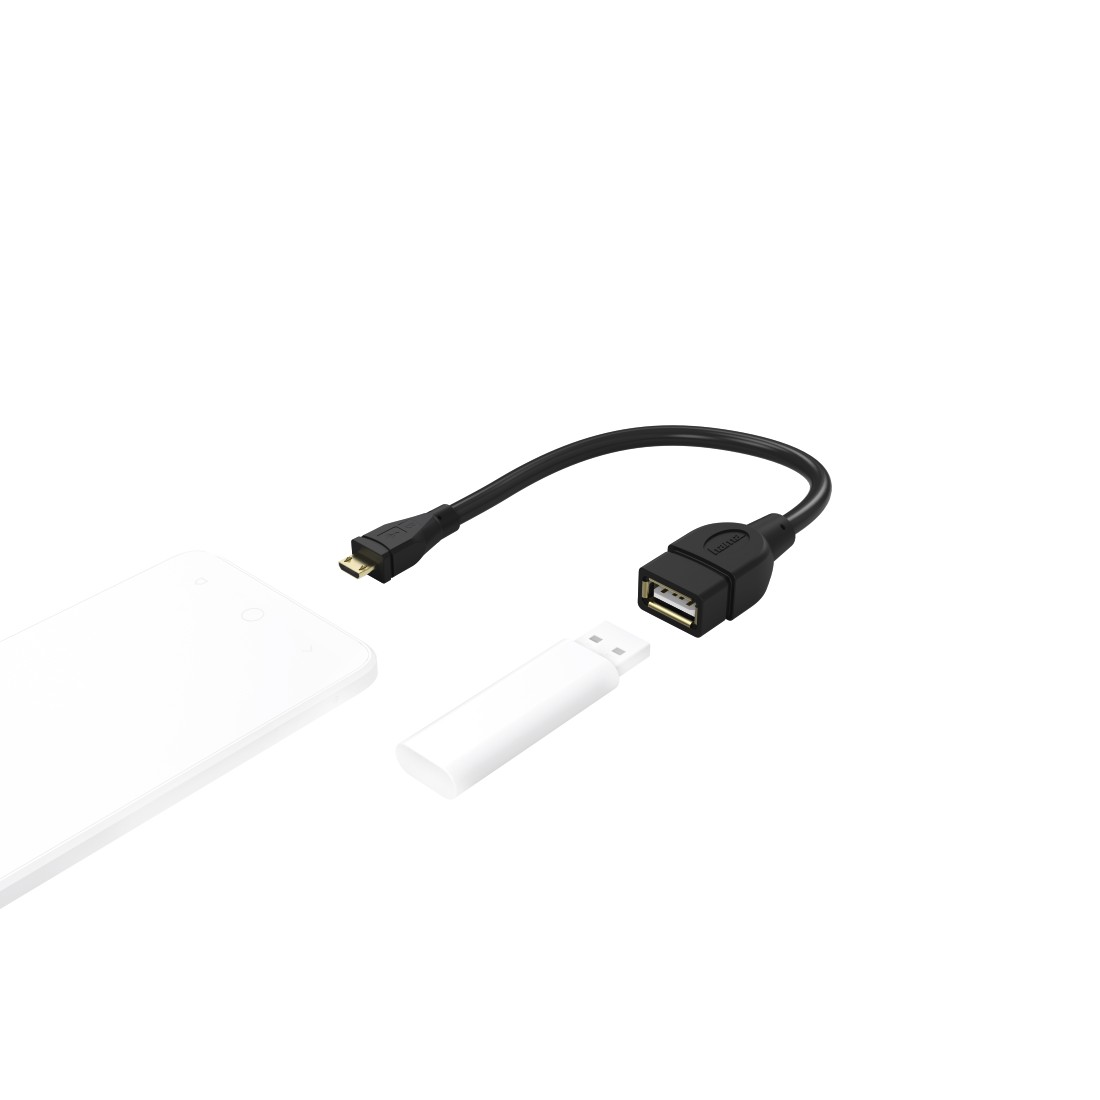 awx3 High-Res Appliance 3 - Hama, USB 2.0 Adapter Cable, OTG, micro B plug - A socket, 15 cm, black